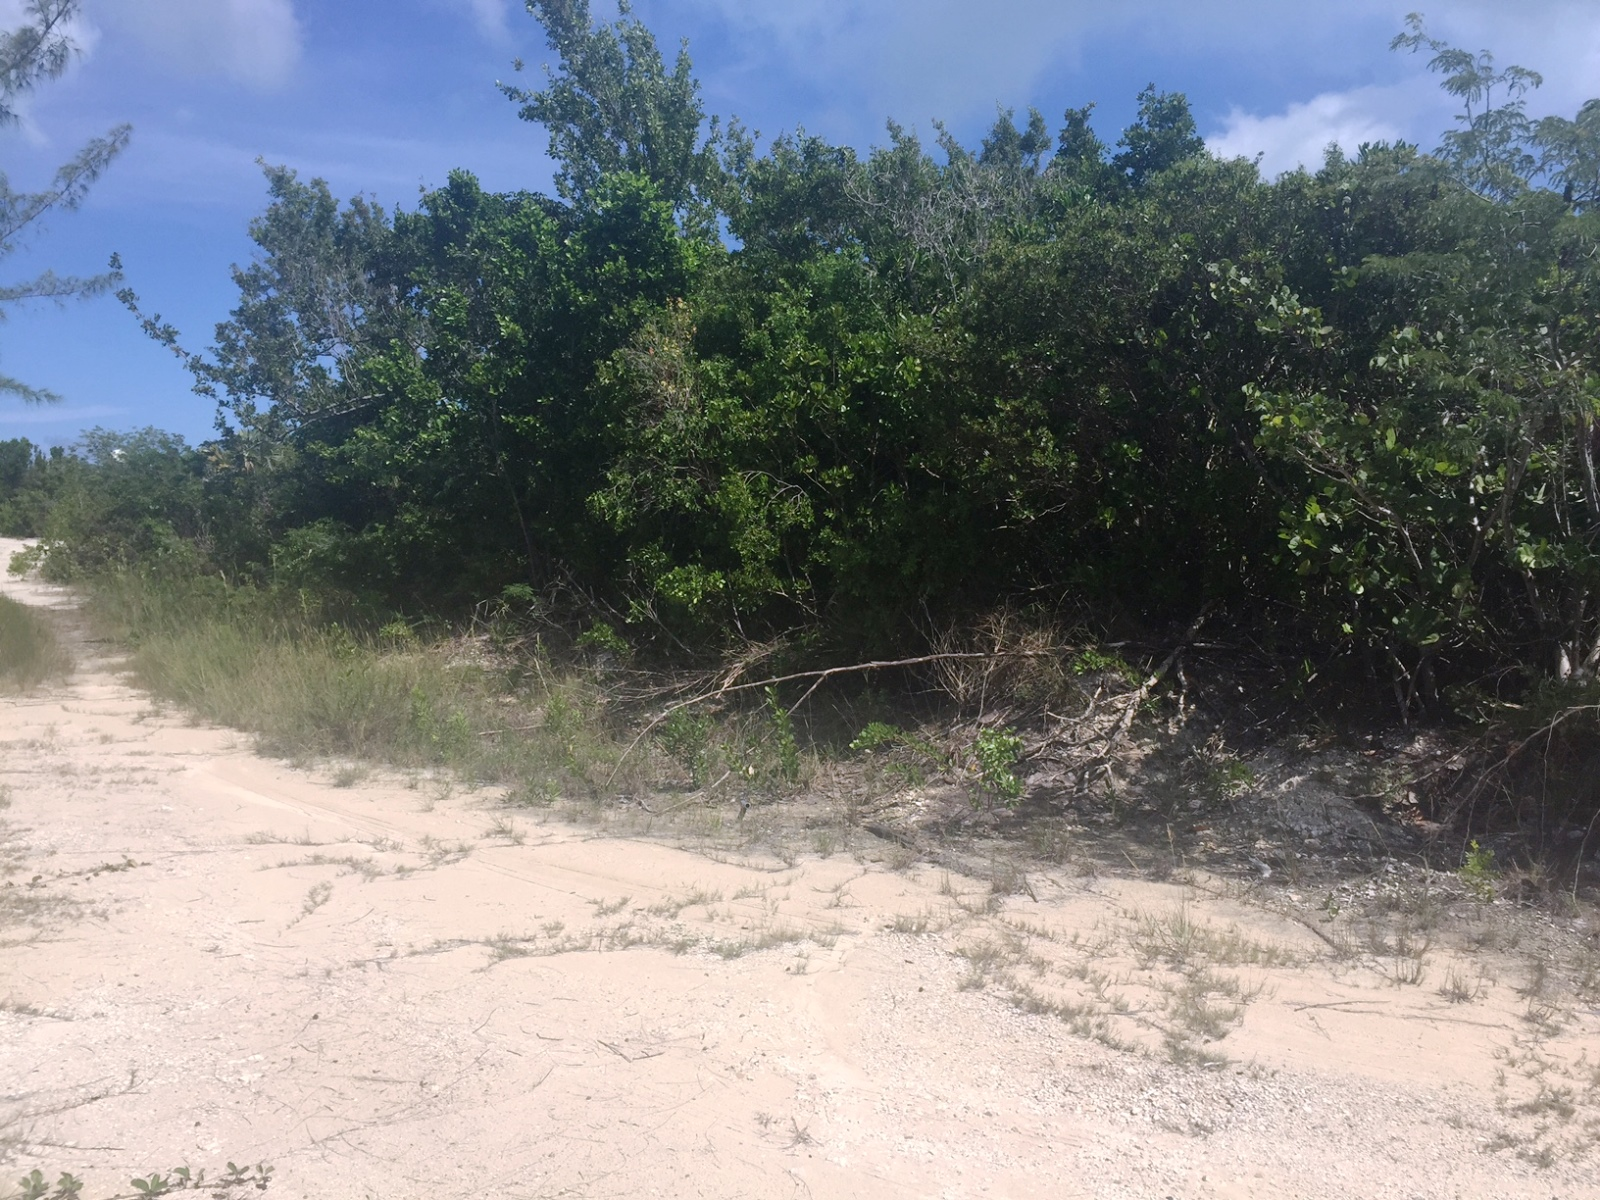 Land for Sale at Vacant Building Lot across from Public Waterfront Access Bahama Sound, Exuma, Bahamas